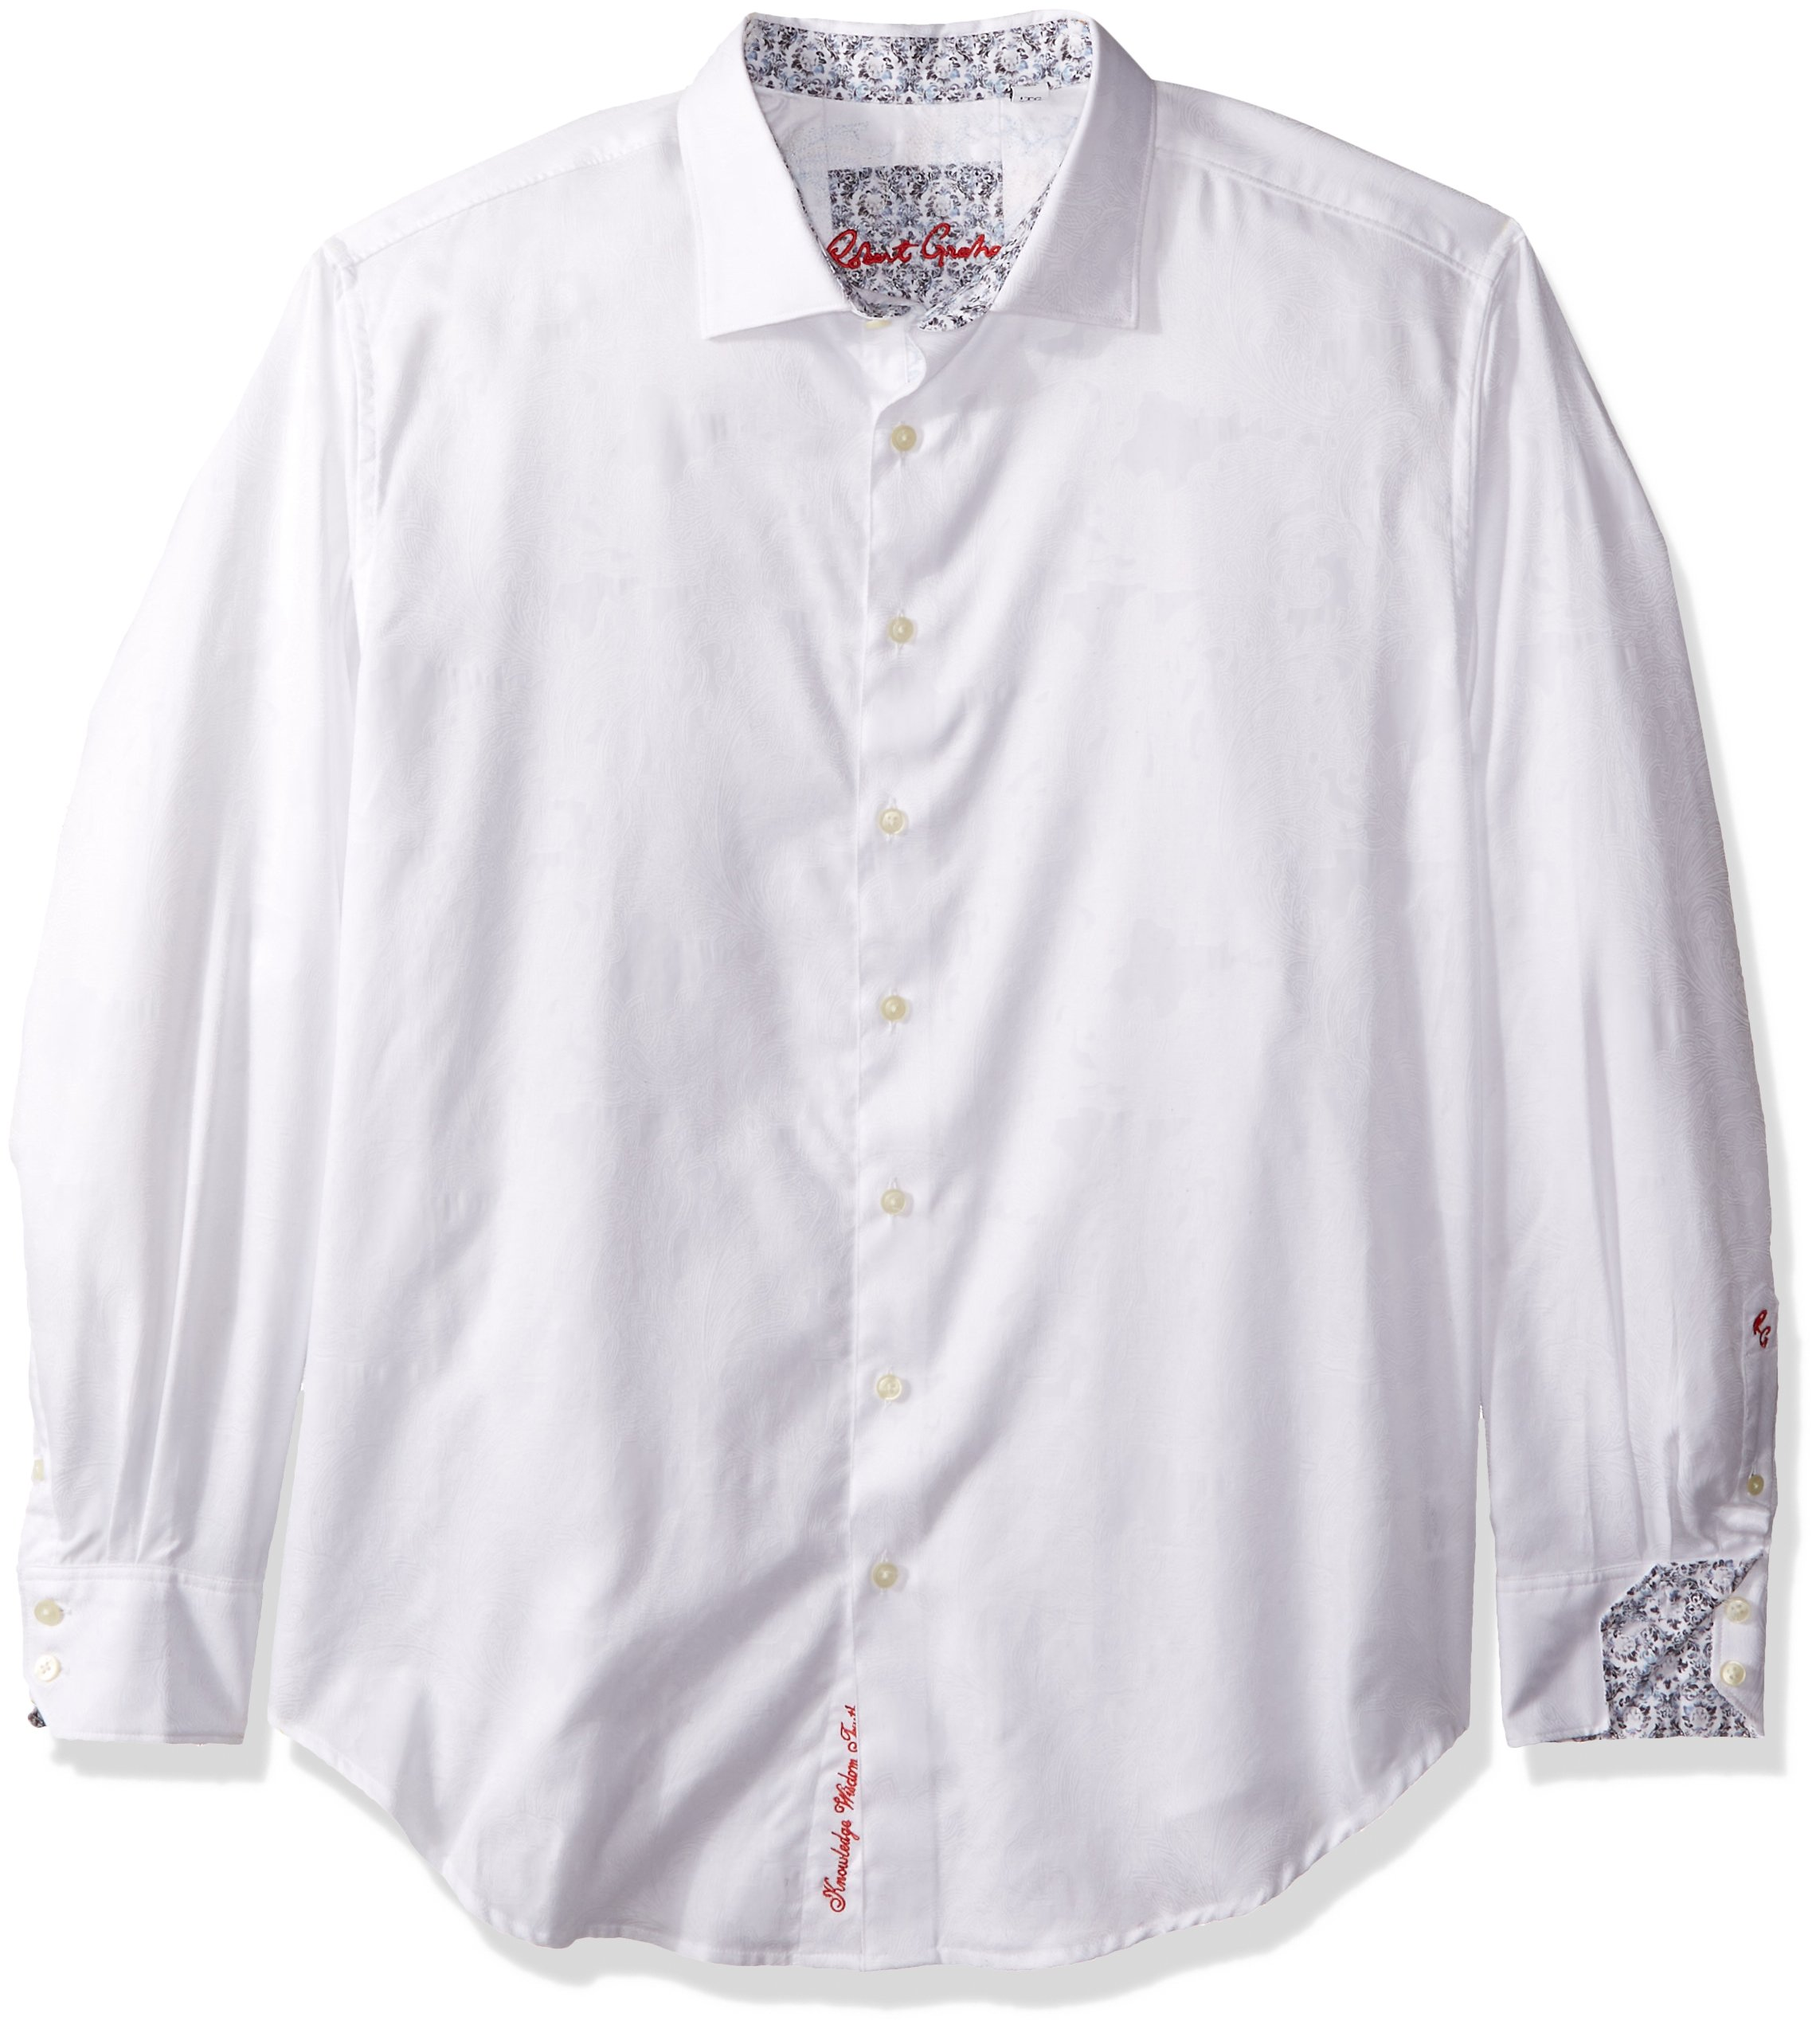 Robert Graham Men's Rosendale L/s Classic Fit Shirt, White 2XL